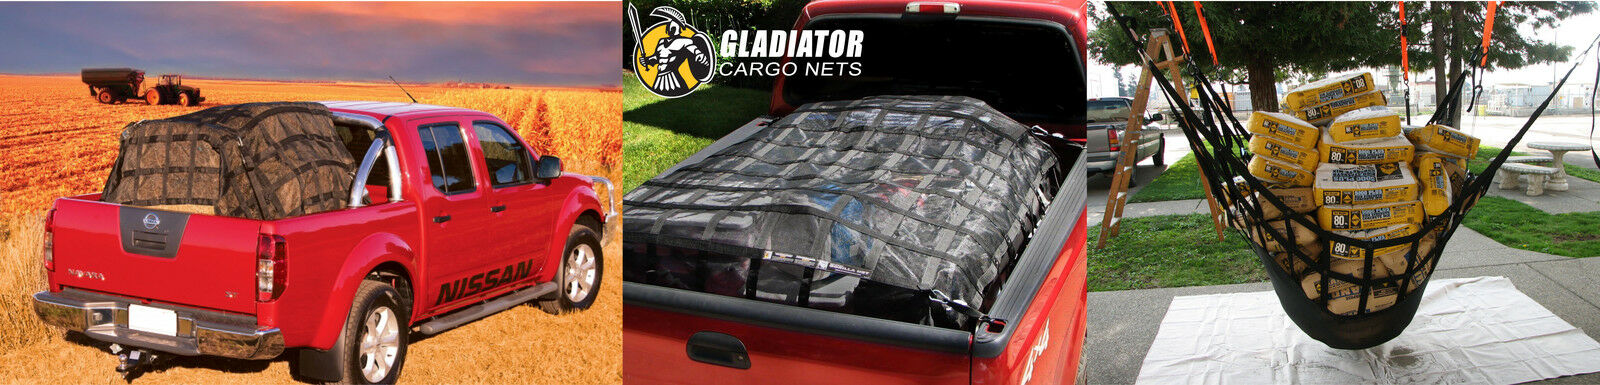 Gladiator Cargo Nets Direct